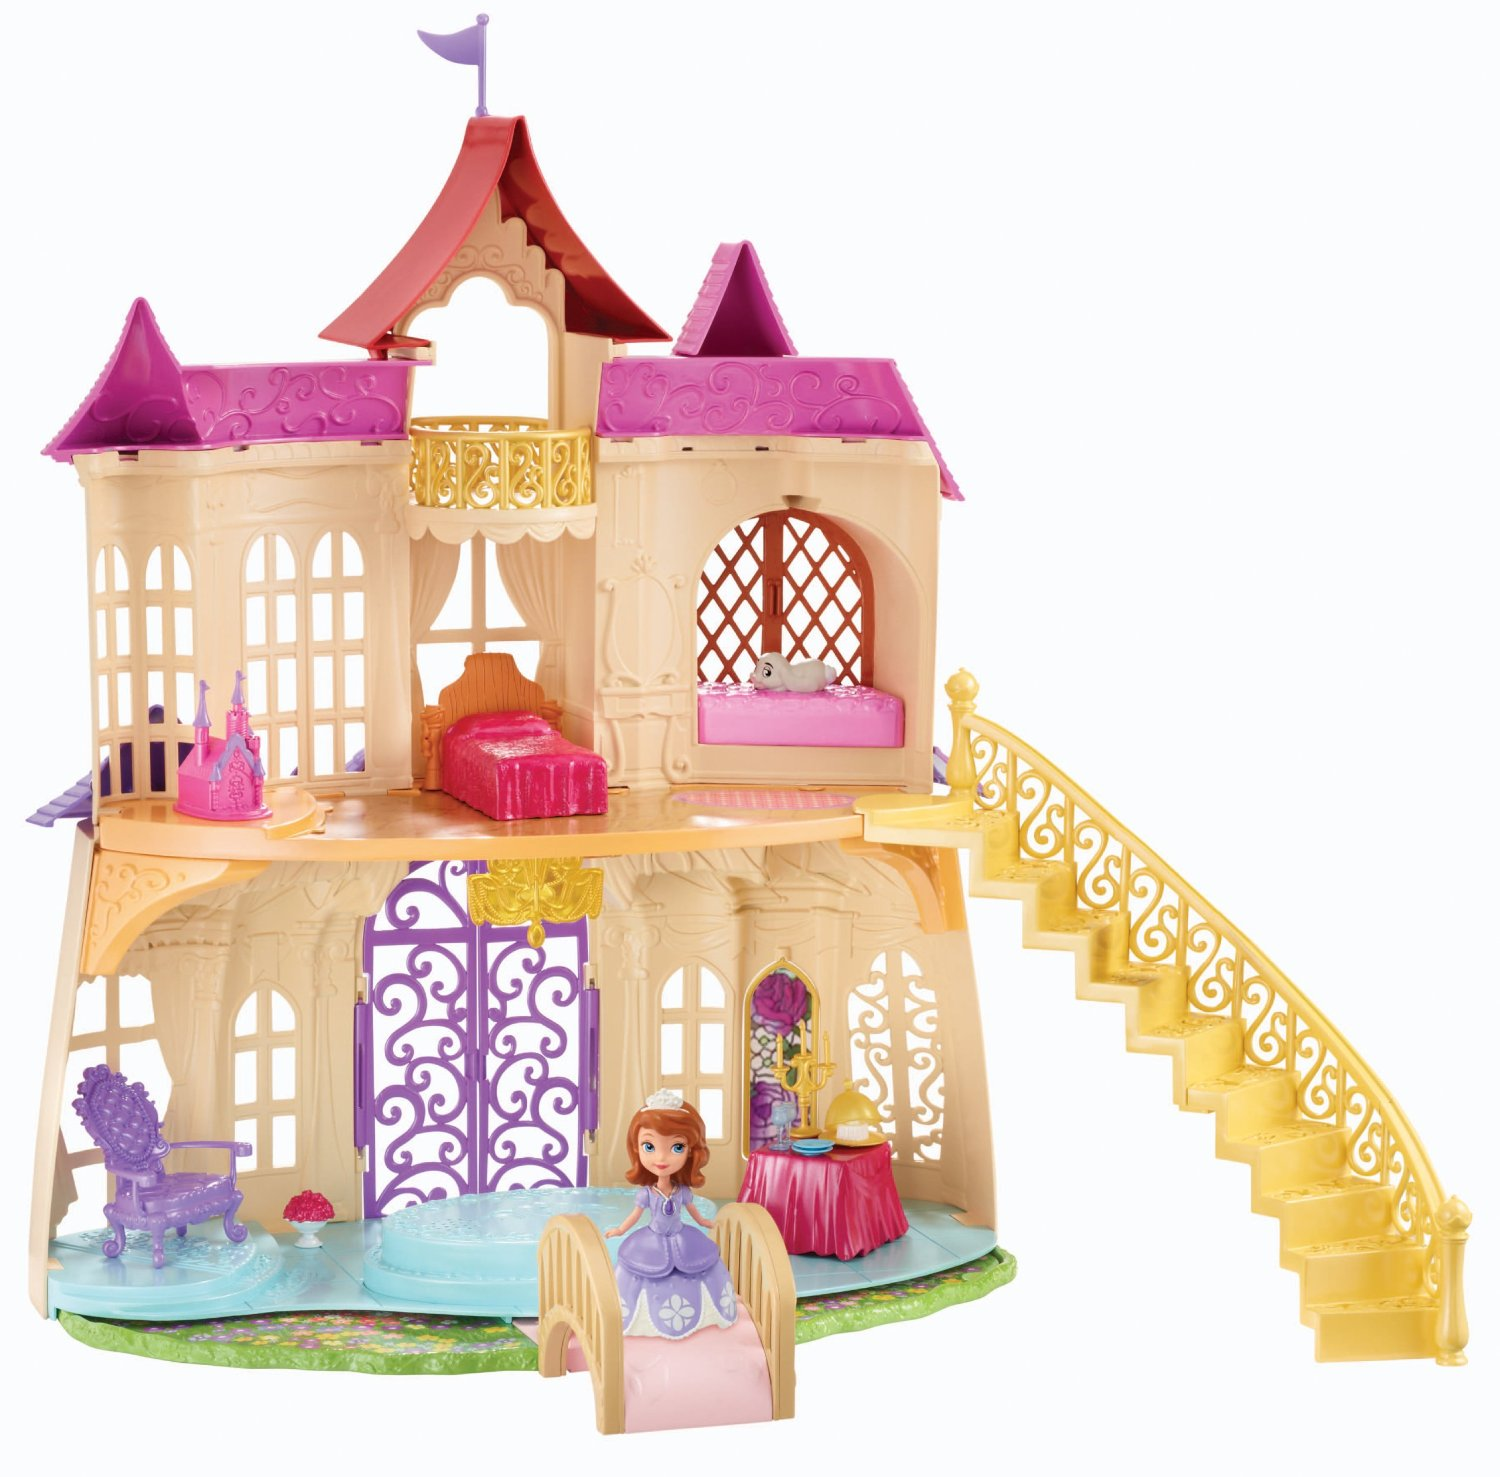 Ngôi nhà của công chúa Sofia - Disney Sofia The First New Magical Talking Castle